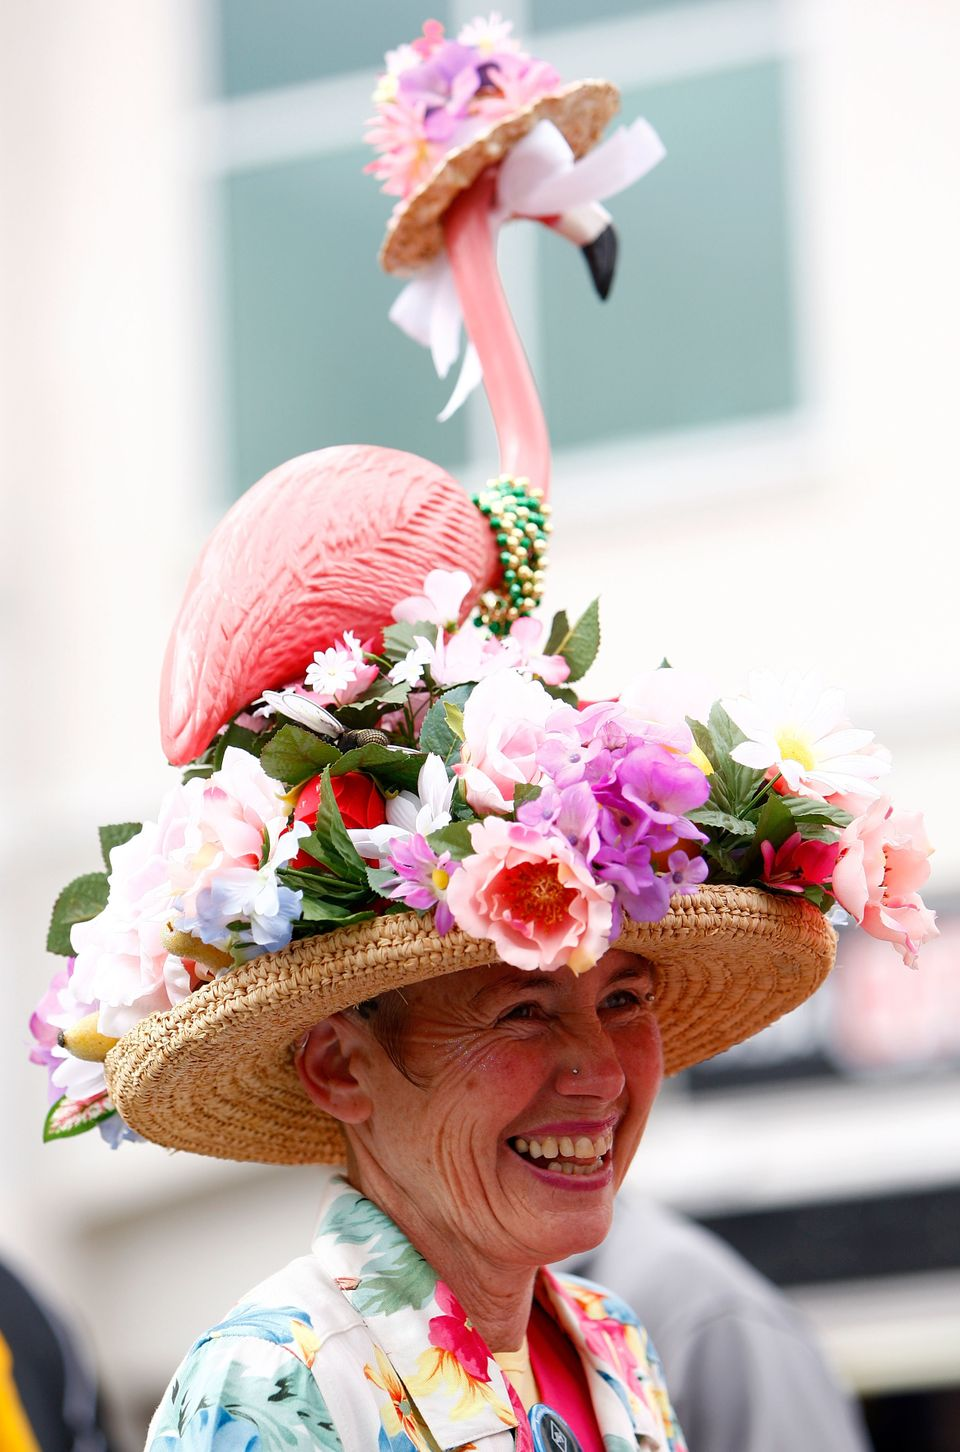 A race fan at the derby at Churchill Downs on May 3, 2008.